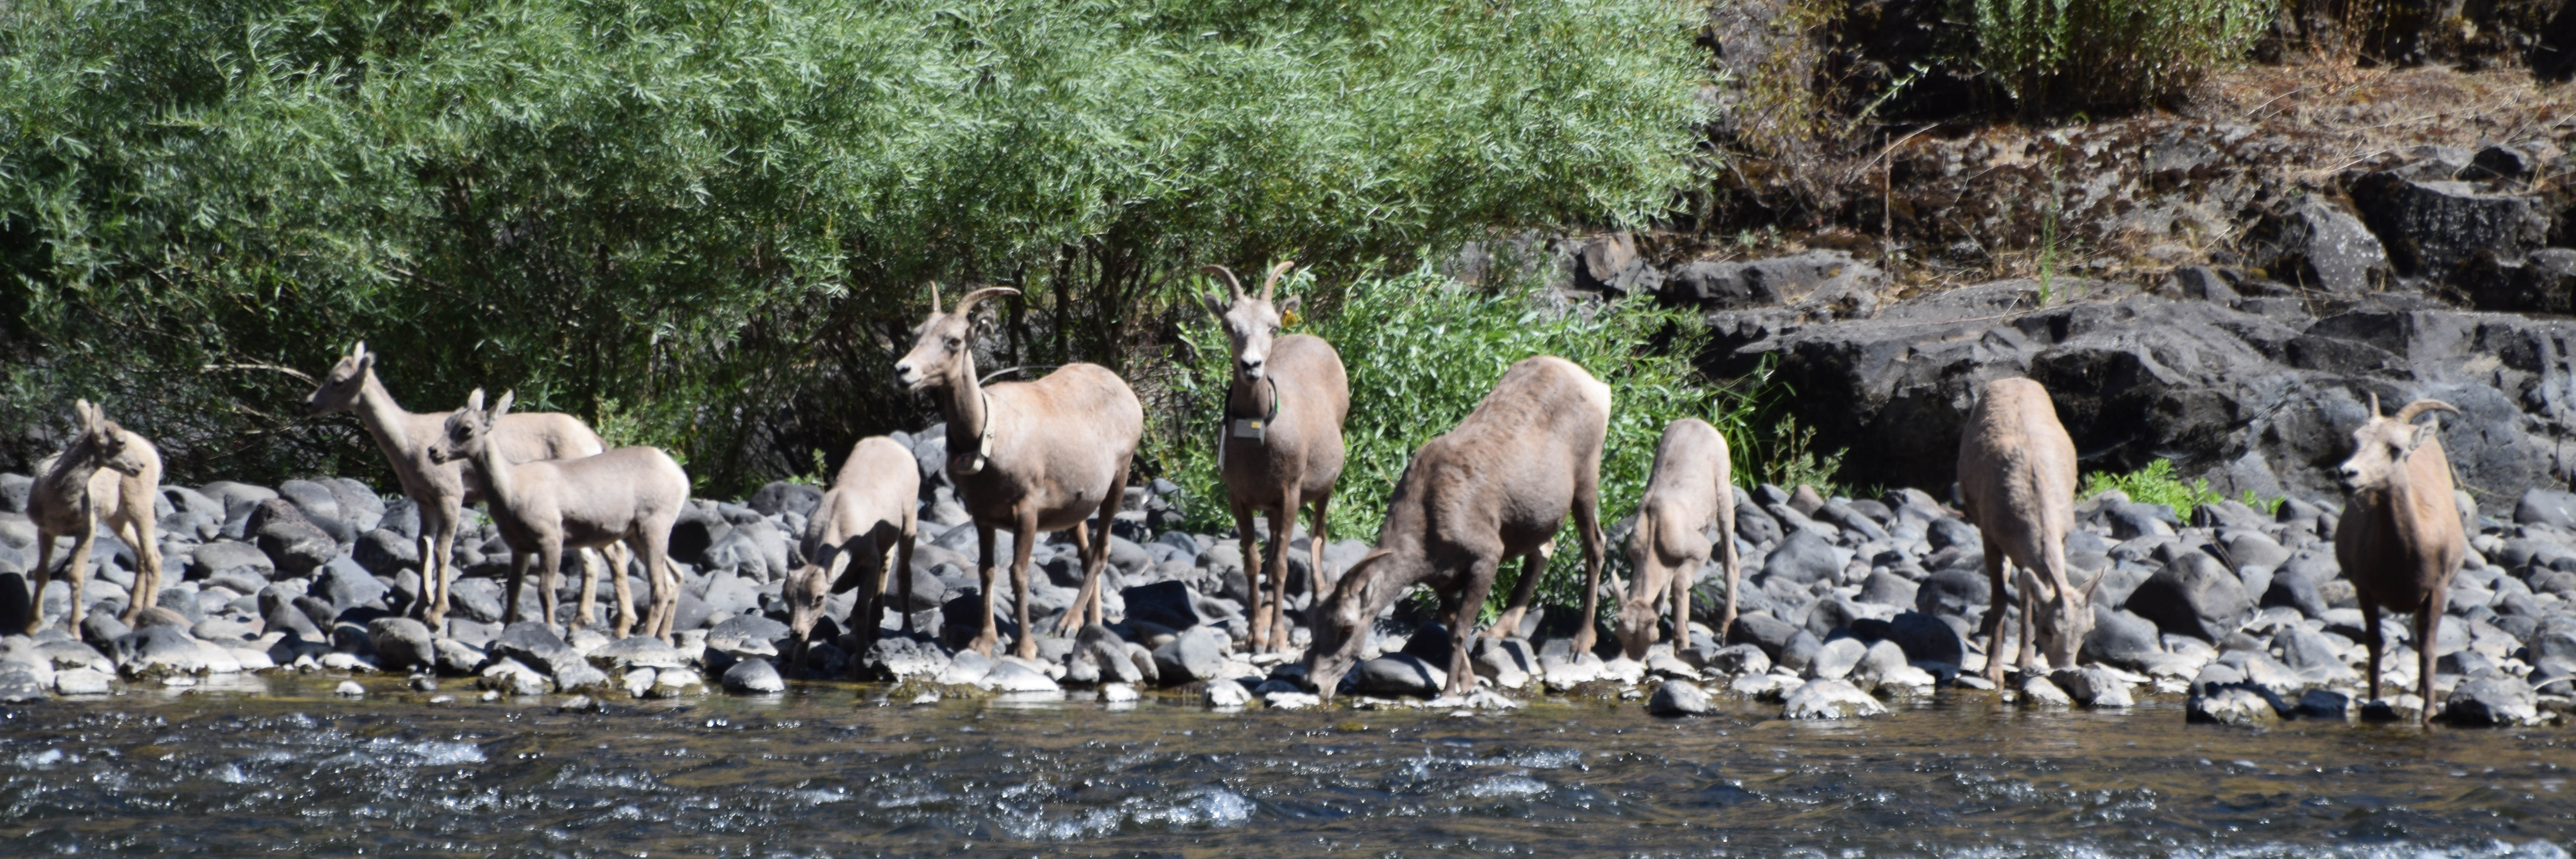 A group of bighorn sheep ewes and lambs drink water along a rocky riverbank.